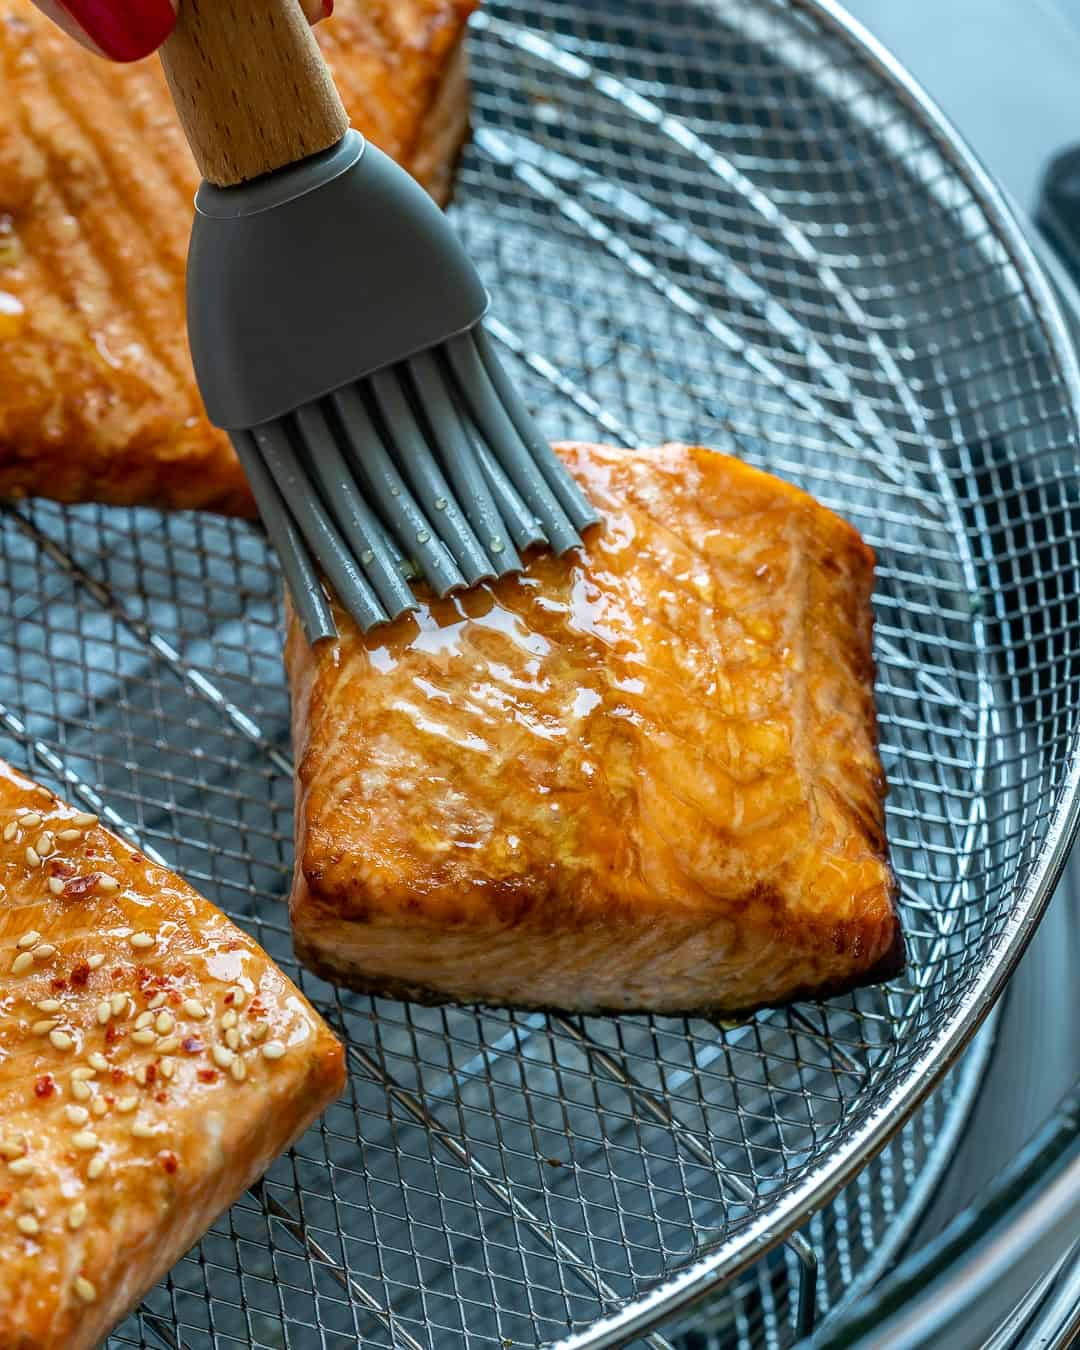 Brush salmon with honey.